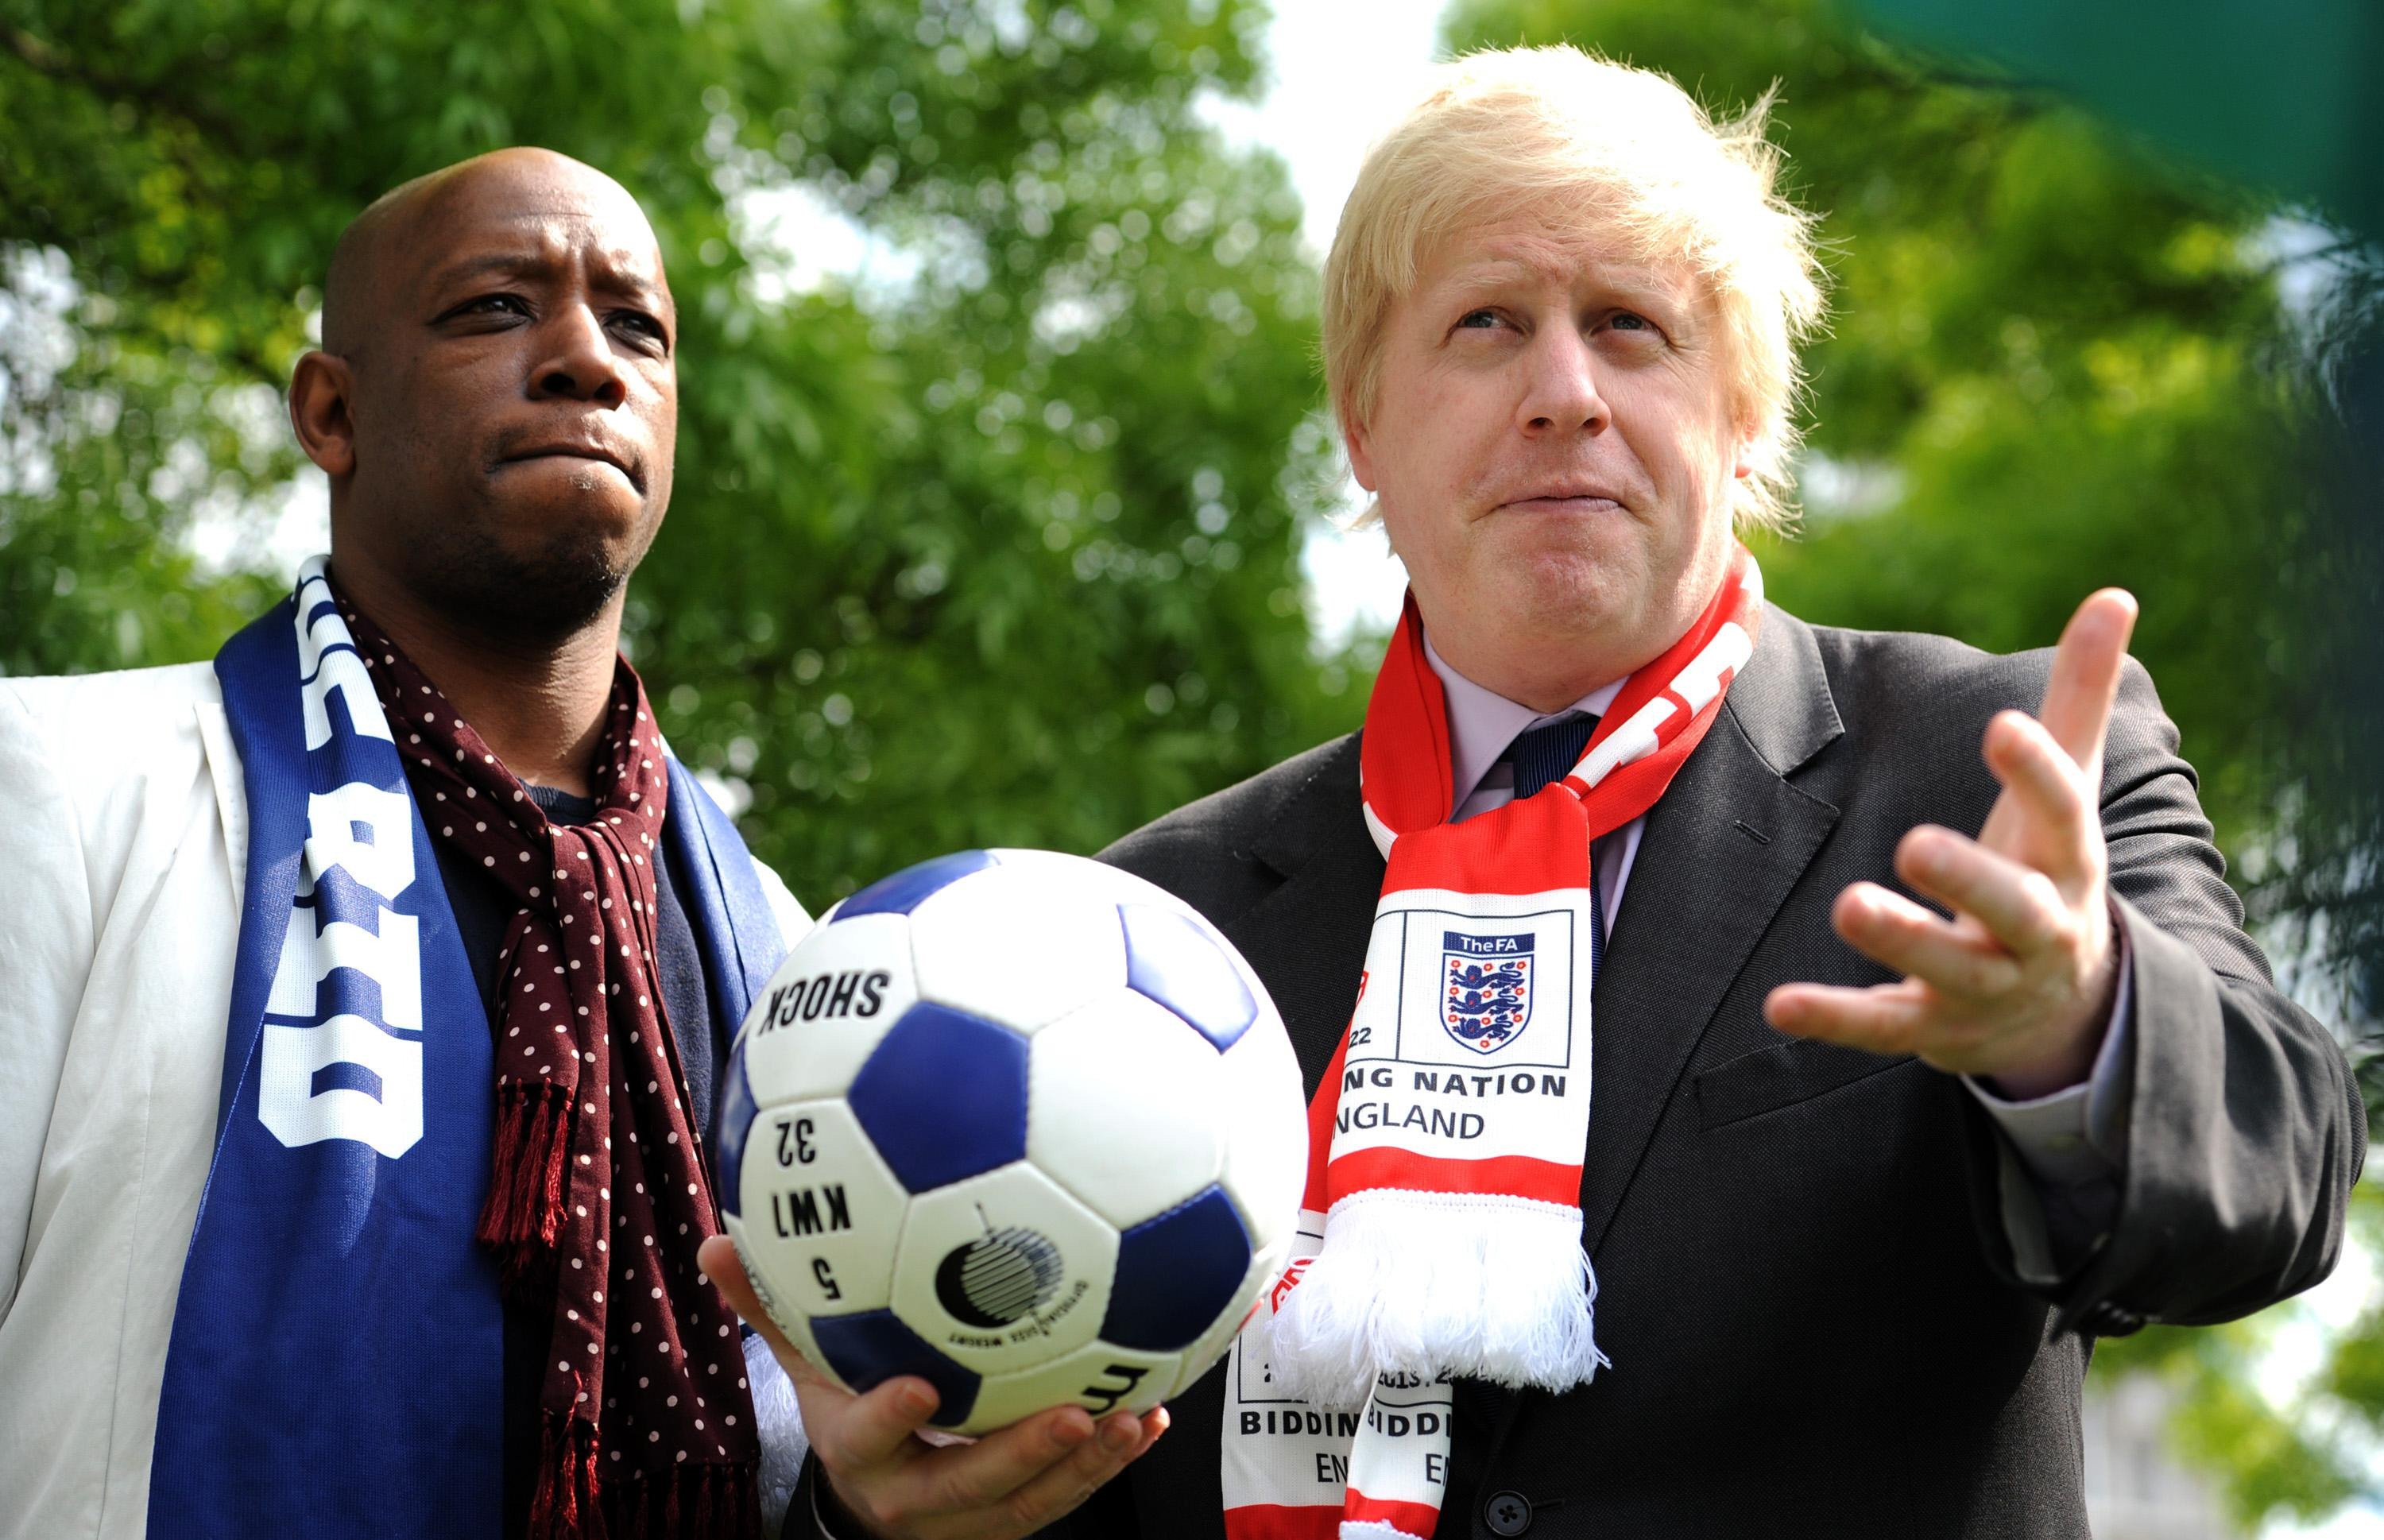 London Mayor Boris Johnson (right) speaks to media with ex footballer Ian Wright after taking receipt of London's official copy of the final World Cup 2018 bid book outside City Hall, London.